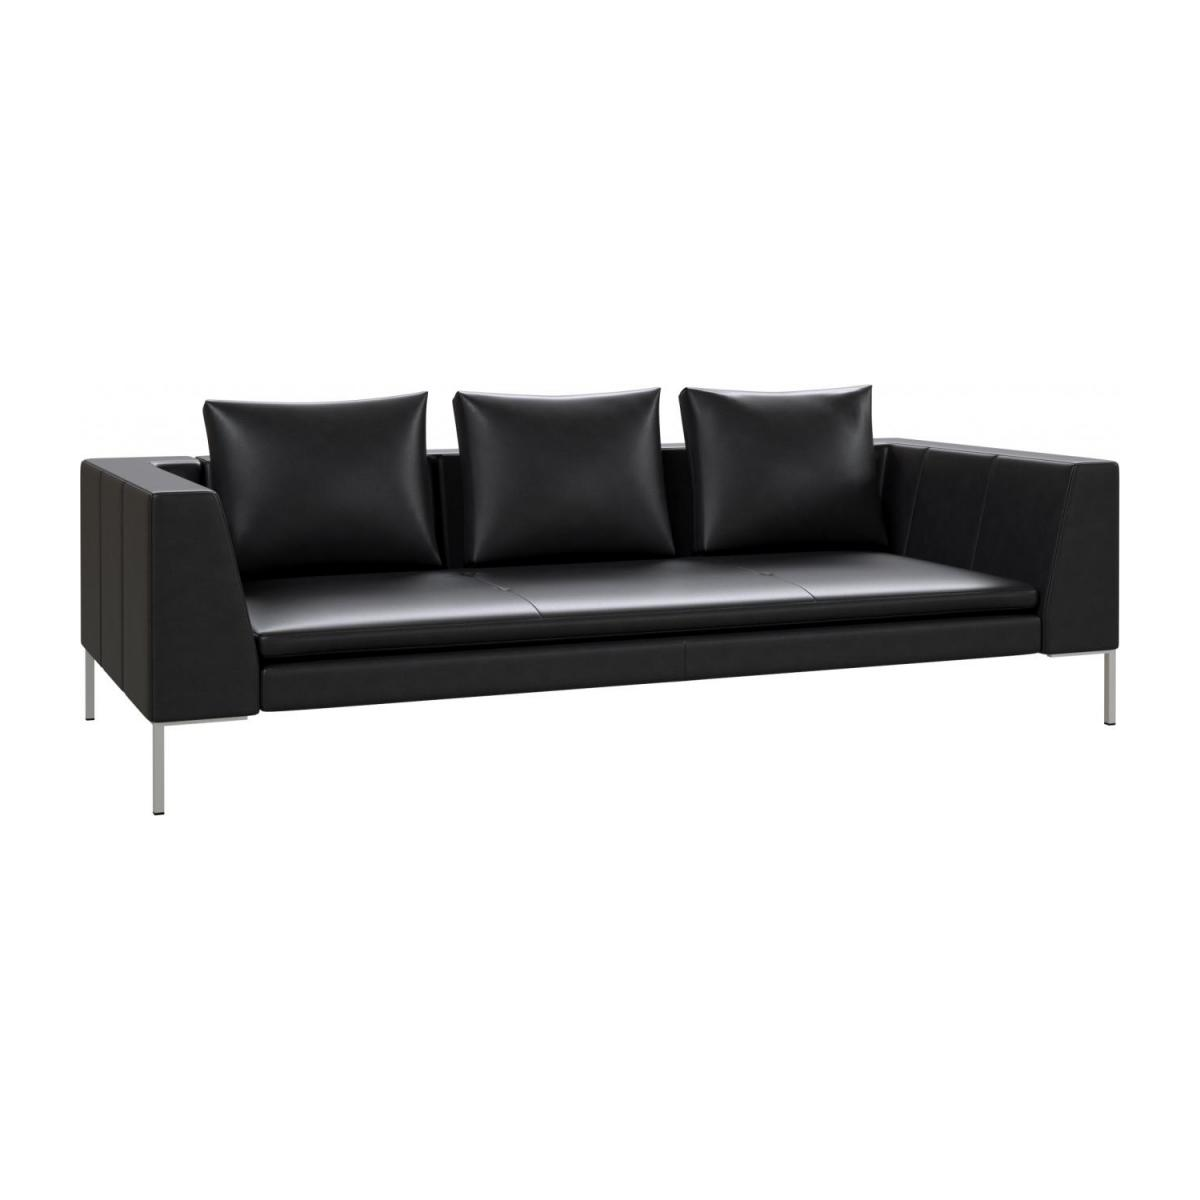 3 seater sofa in Savoy semi-aniline leather, platin black